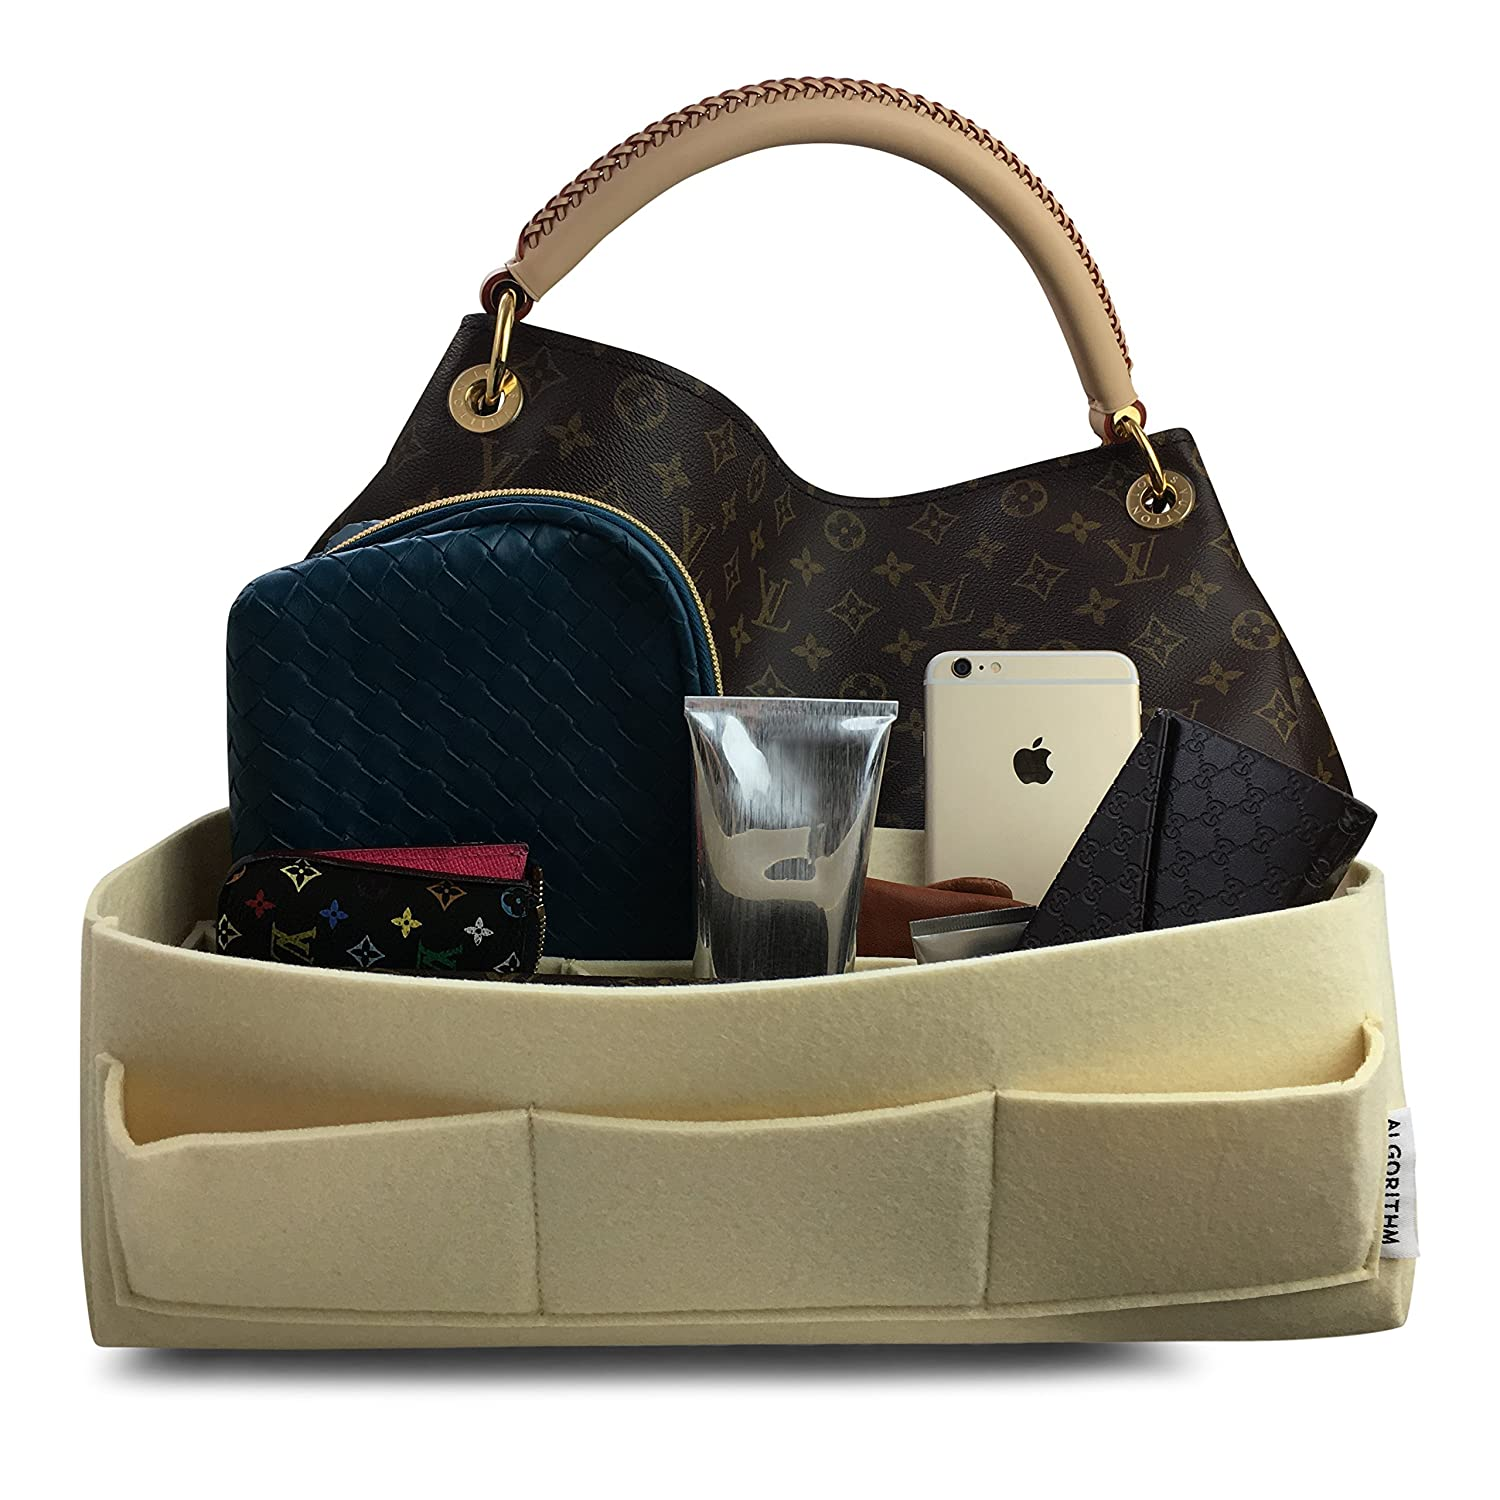 44486d11d4e4 Imaging your well-protected Artsy hits the highest resale value for you!  AlgorithmBags Handbag Organizer Insert  Liner Divider will change your life.